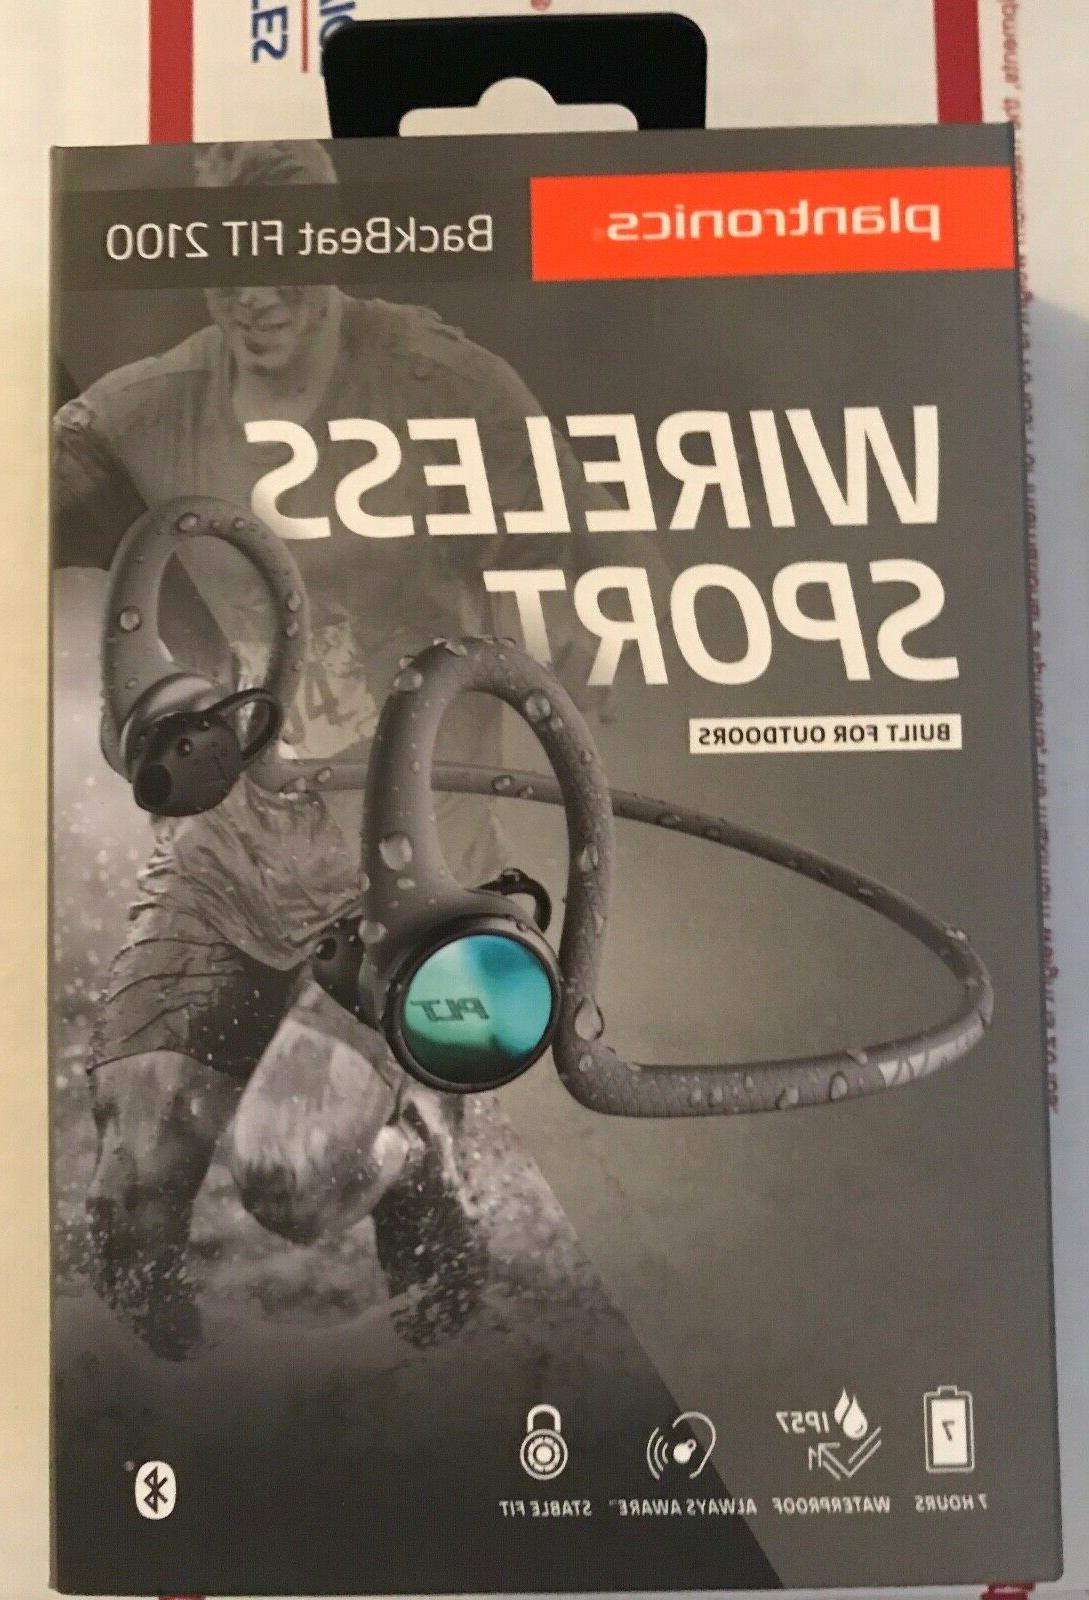 backbeat fit 2100 wireless headphones sweatproof new